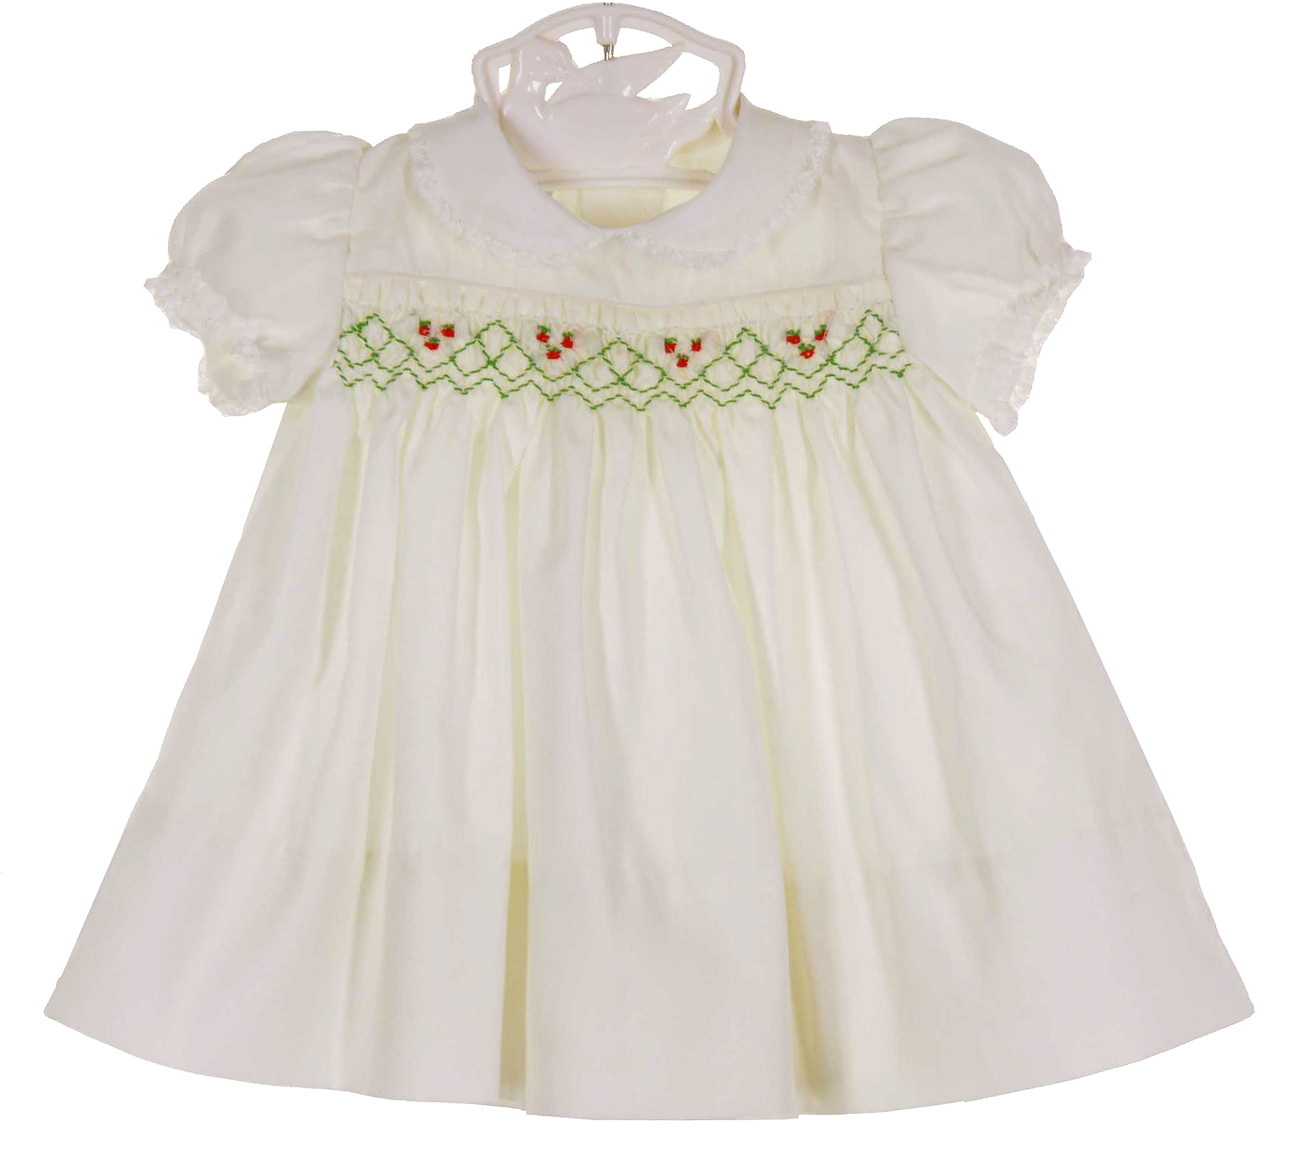 Polly Flinders white smocked Christmas dress for baby